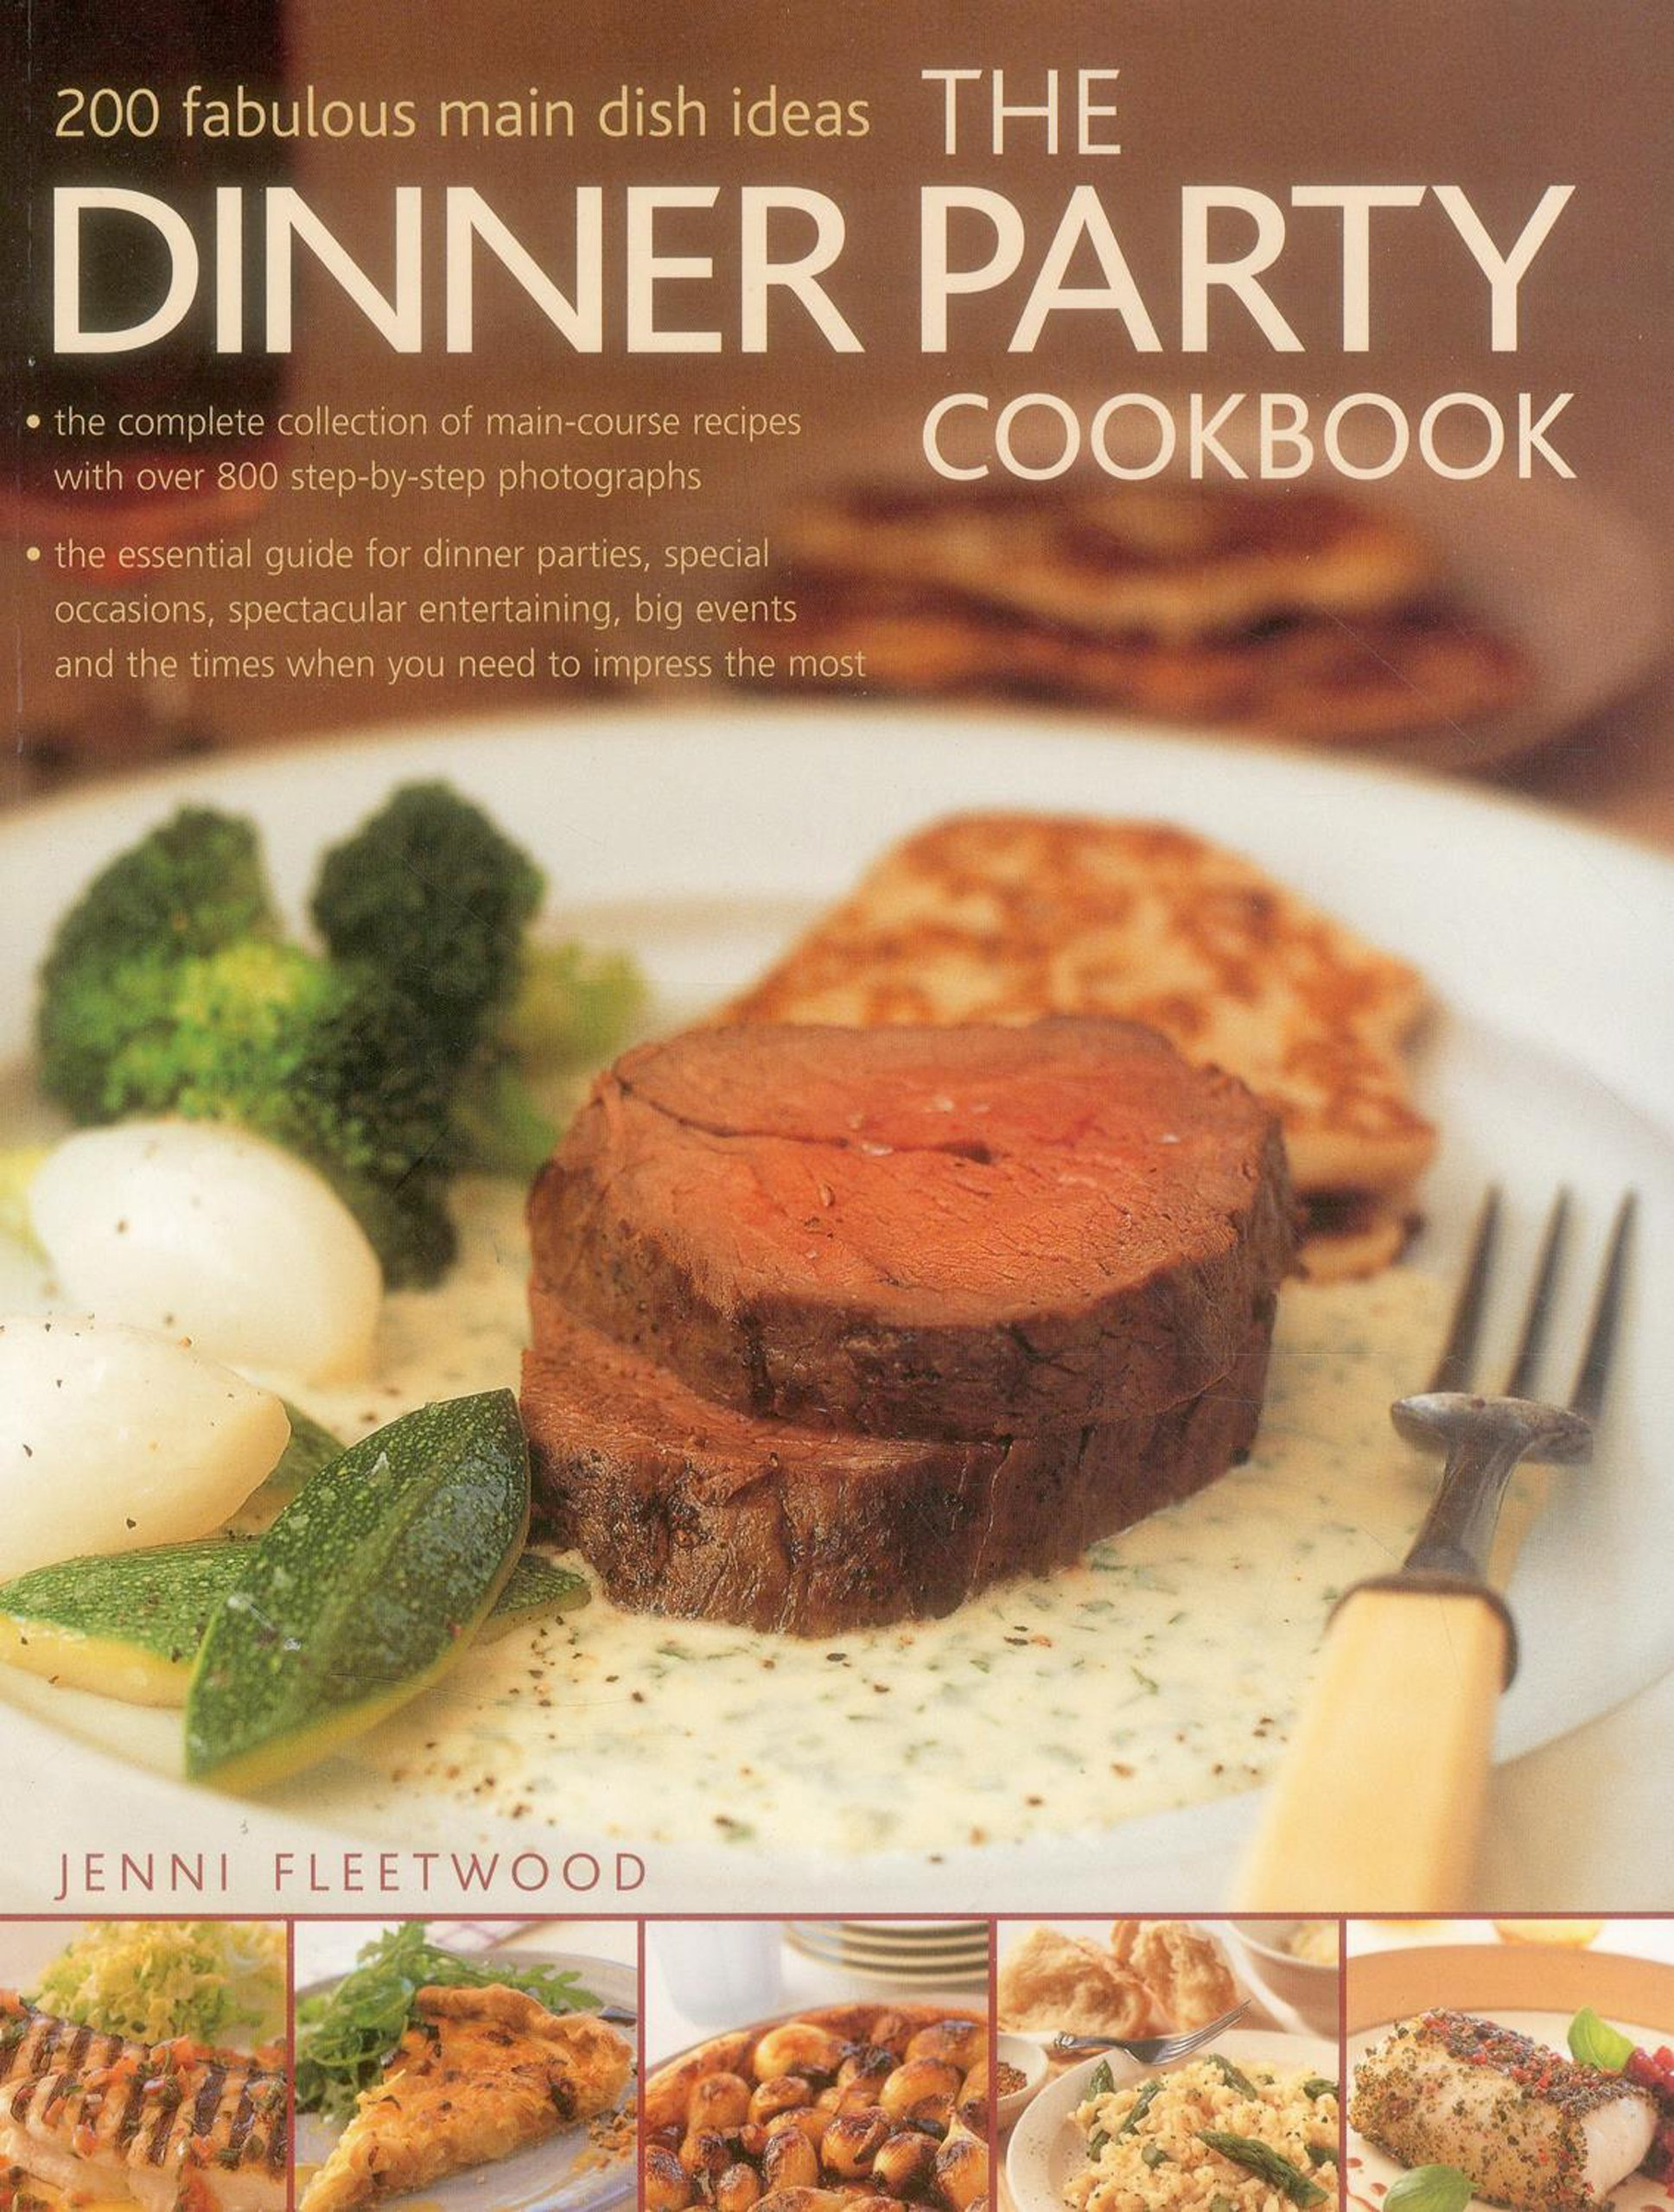 Main Course Ideas For Dinner Party Part - 20: The Dinner Party Cookbook: 200 Fabulous Main Dish Ideas: Jenni Fleetwood:  9781780193878: Amazon.com: Books